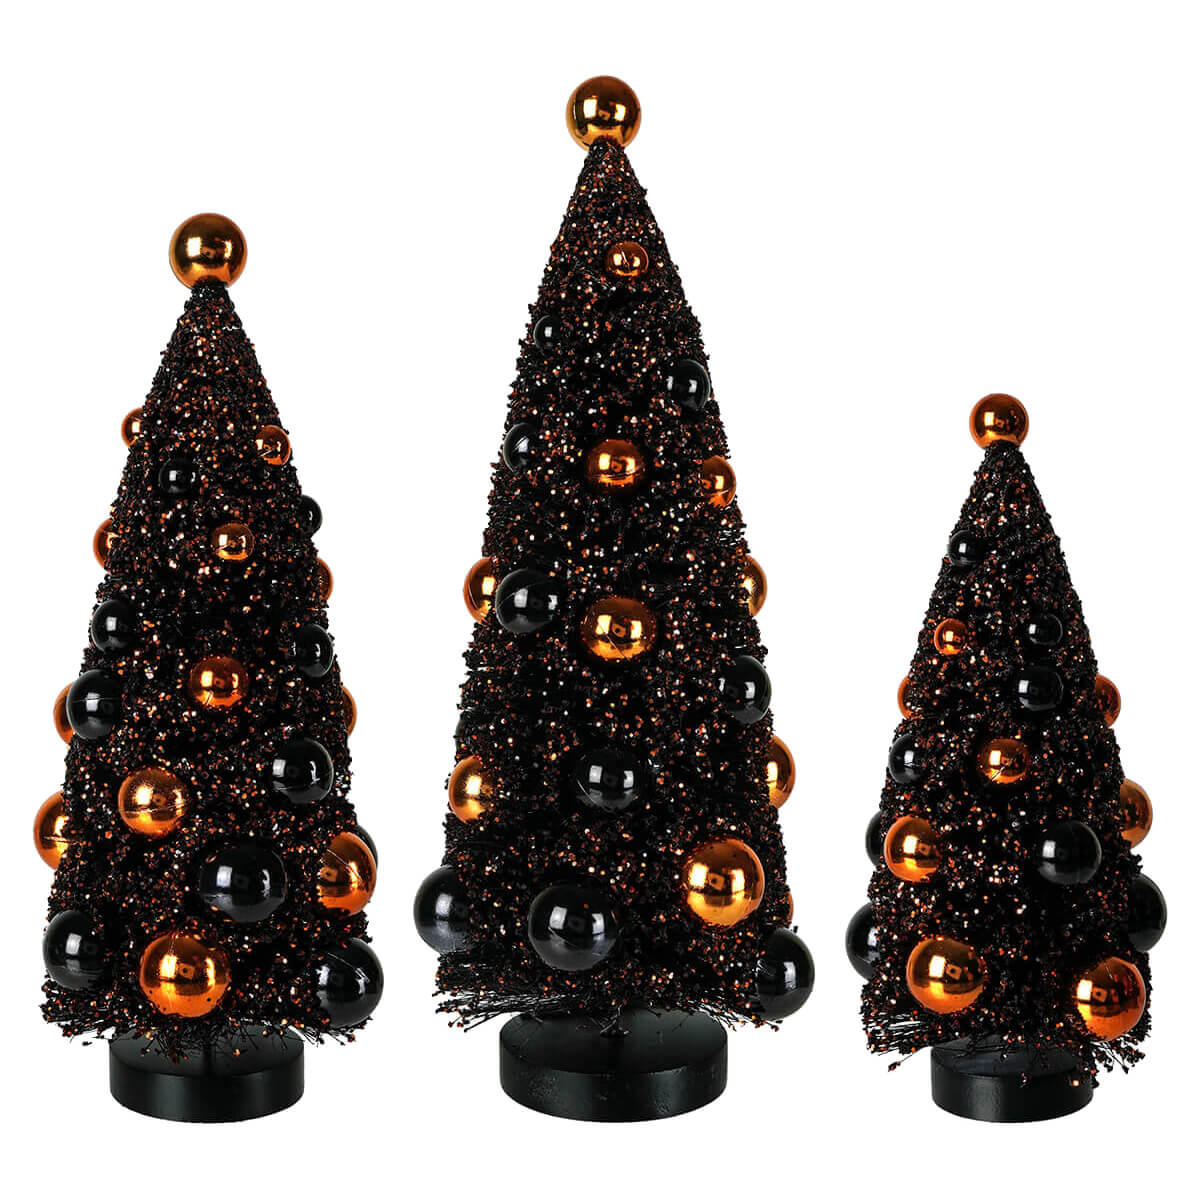 Halloween Trees Traditions